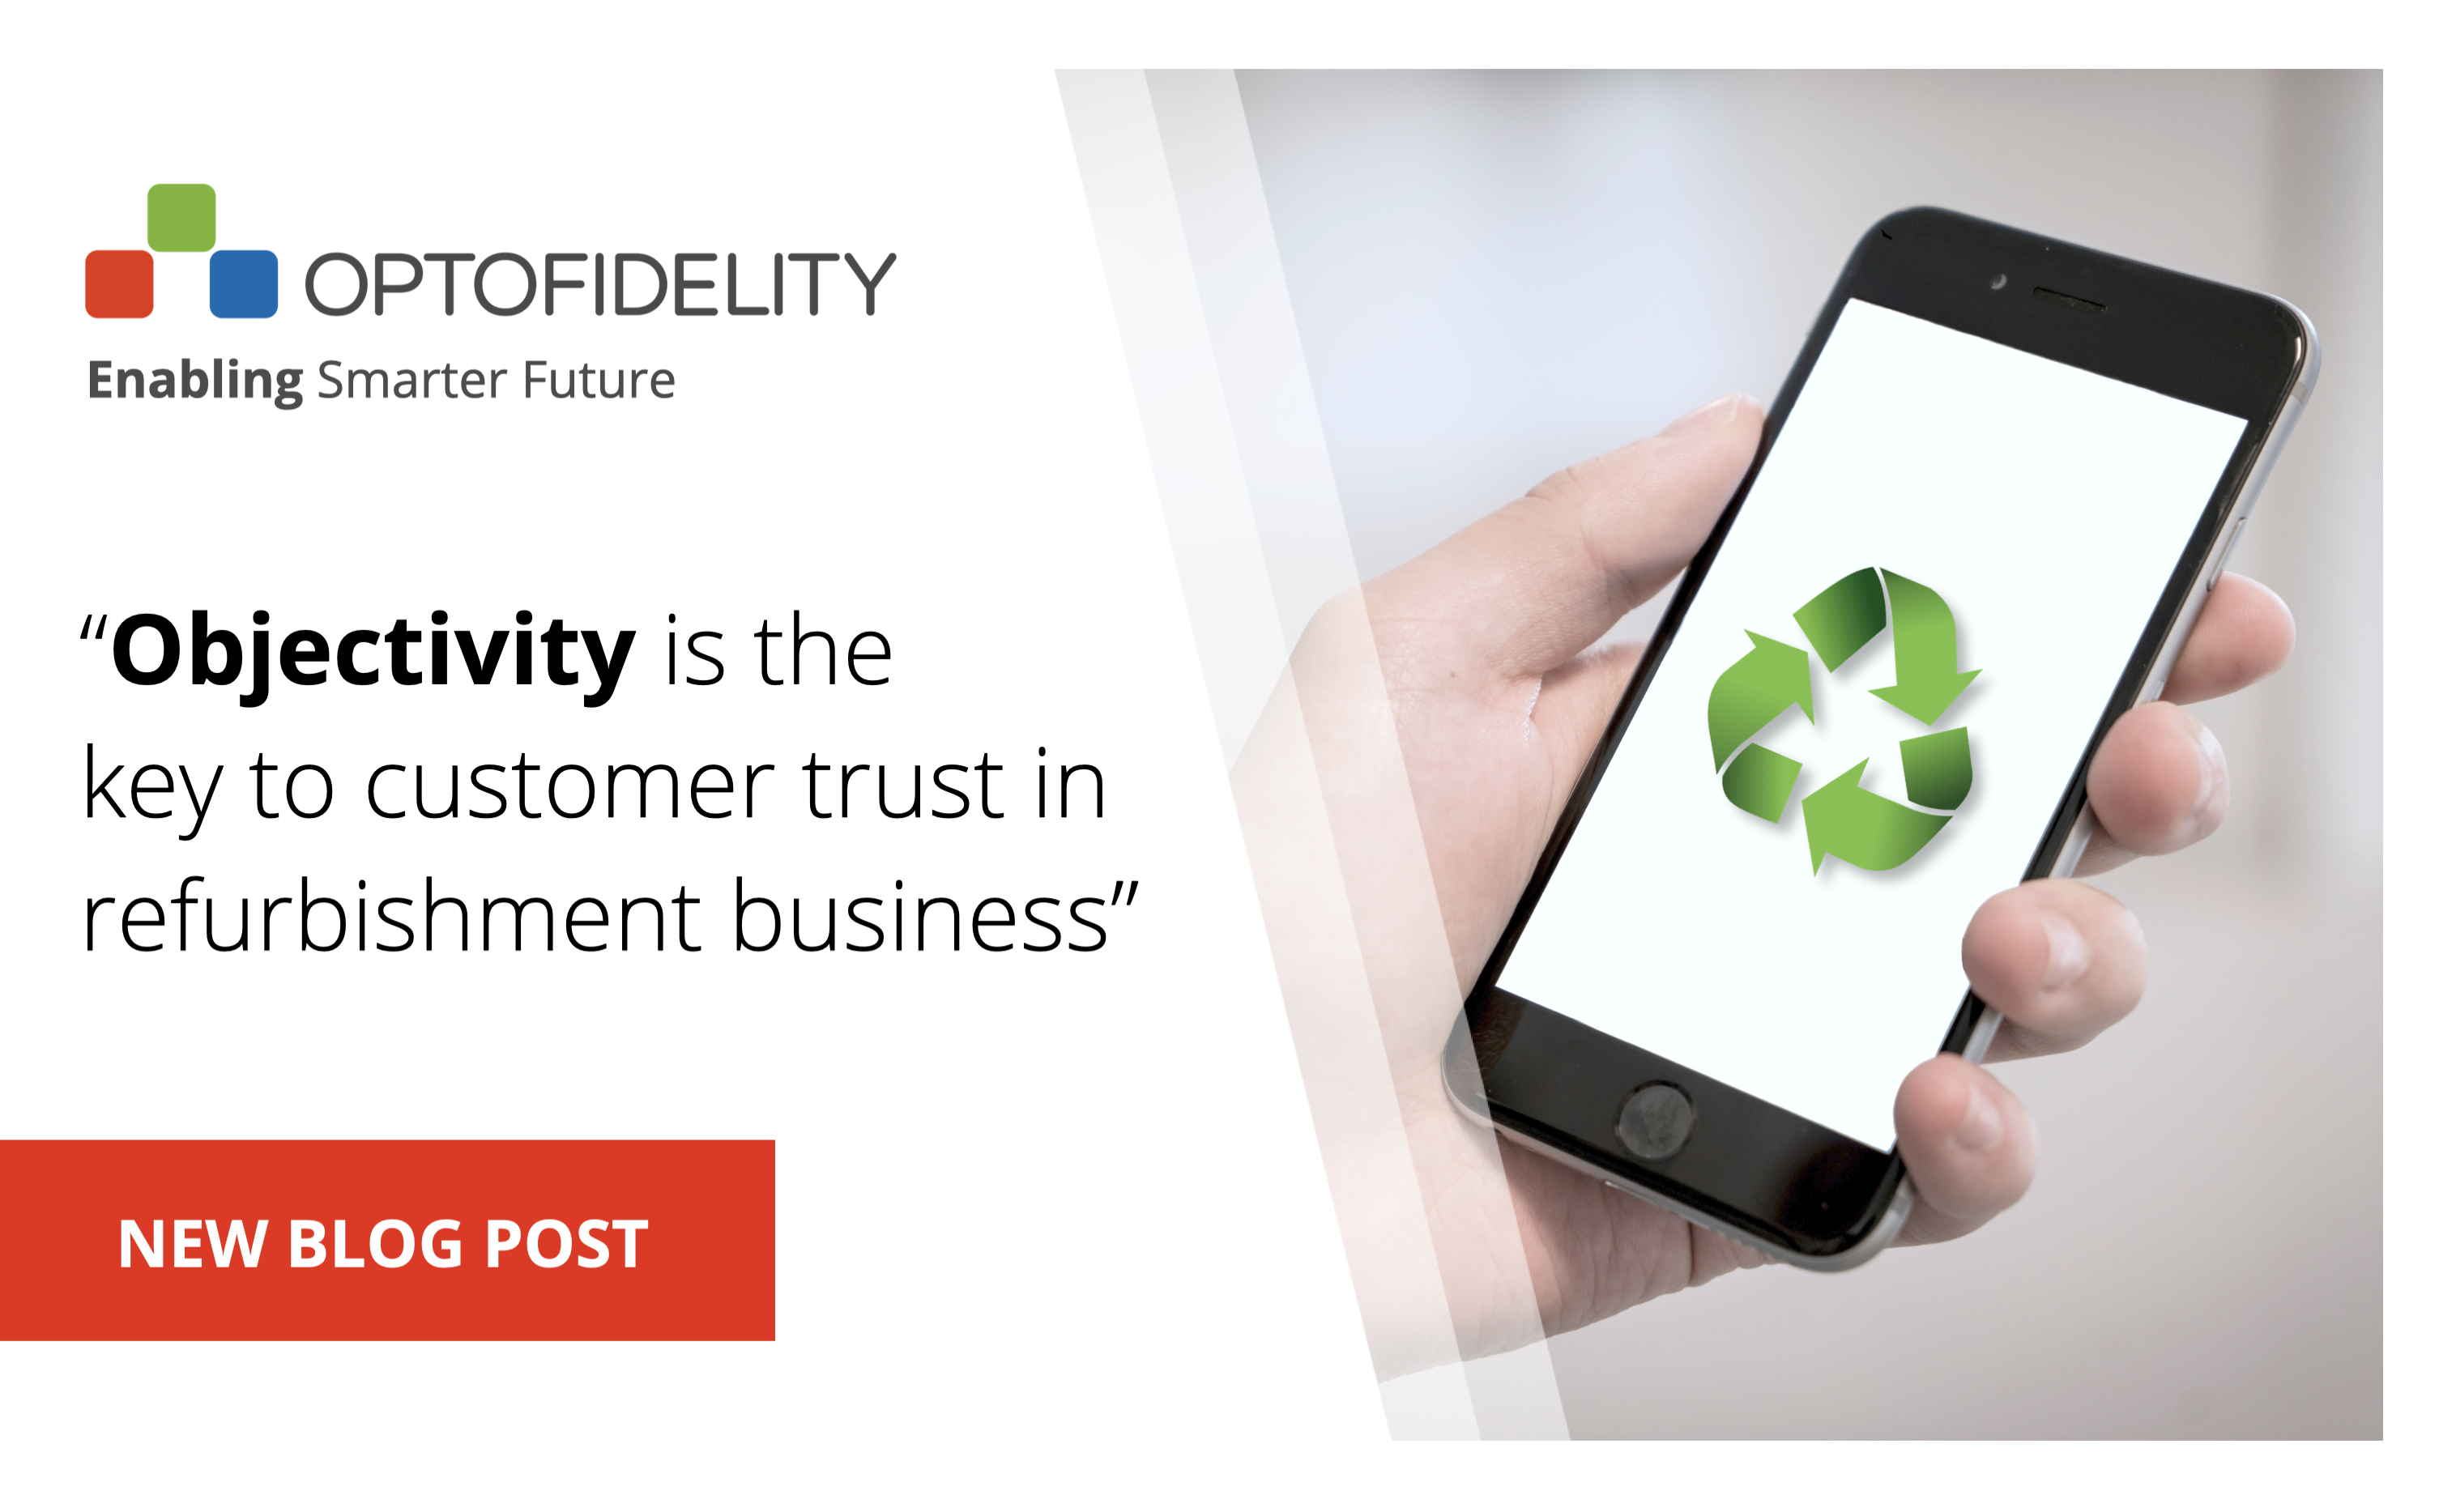 https://f.hubspotusercontent10.net/hubfs/6347010/Objectivity_is_the_key_to_customer_trust_in_refurbishment_business_OptoFidelity_blog_featured_image.png